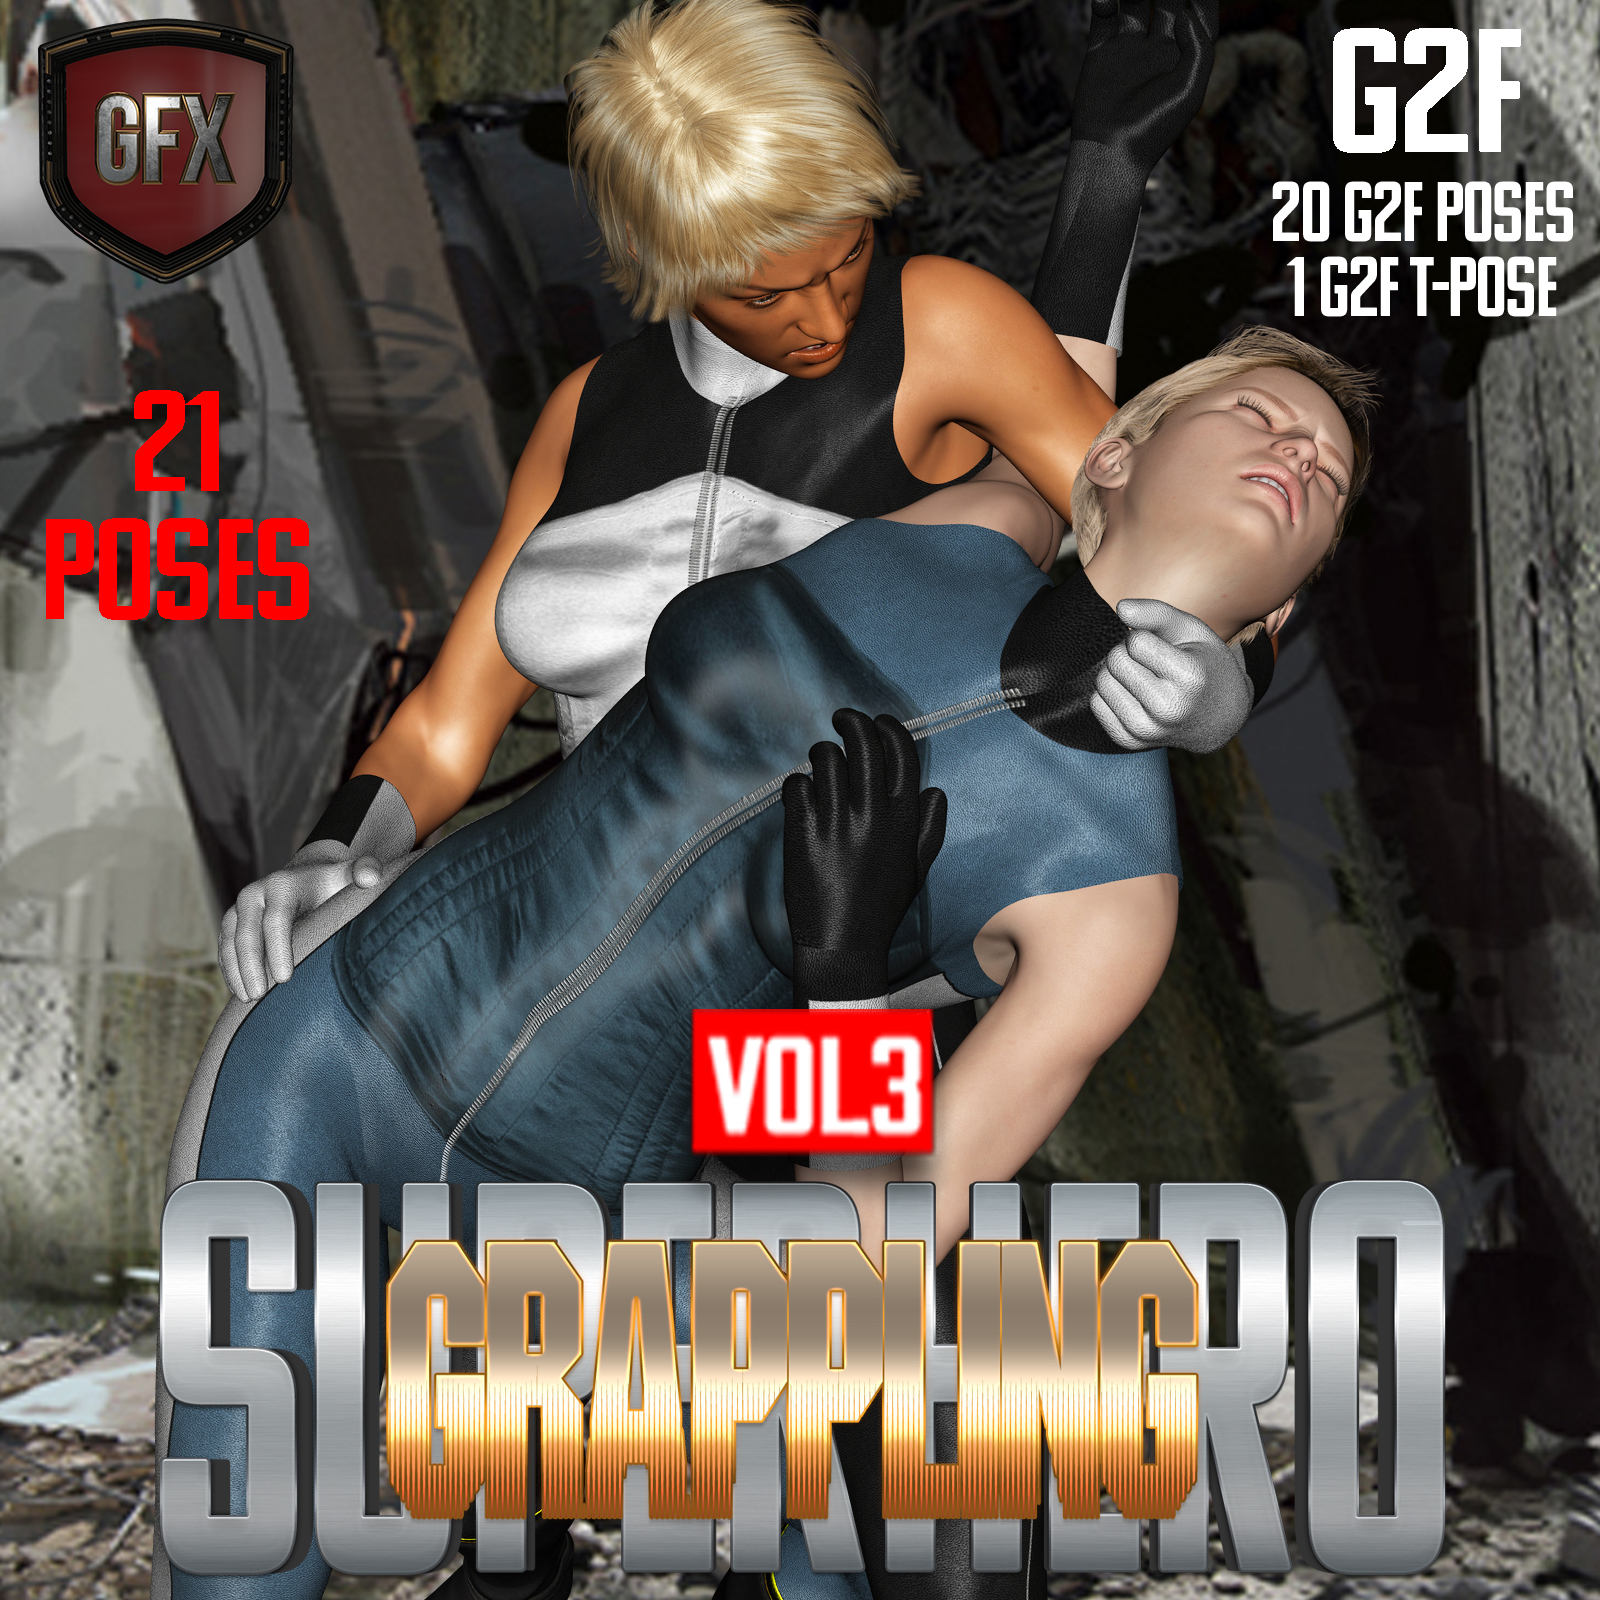 SuperHero Grappling for G2F Volume 3